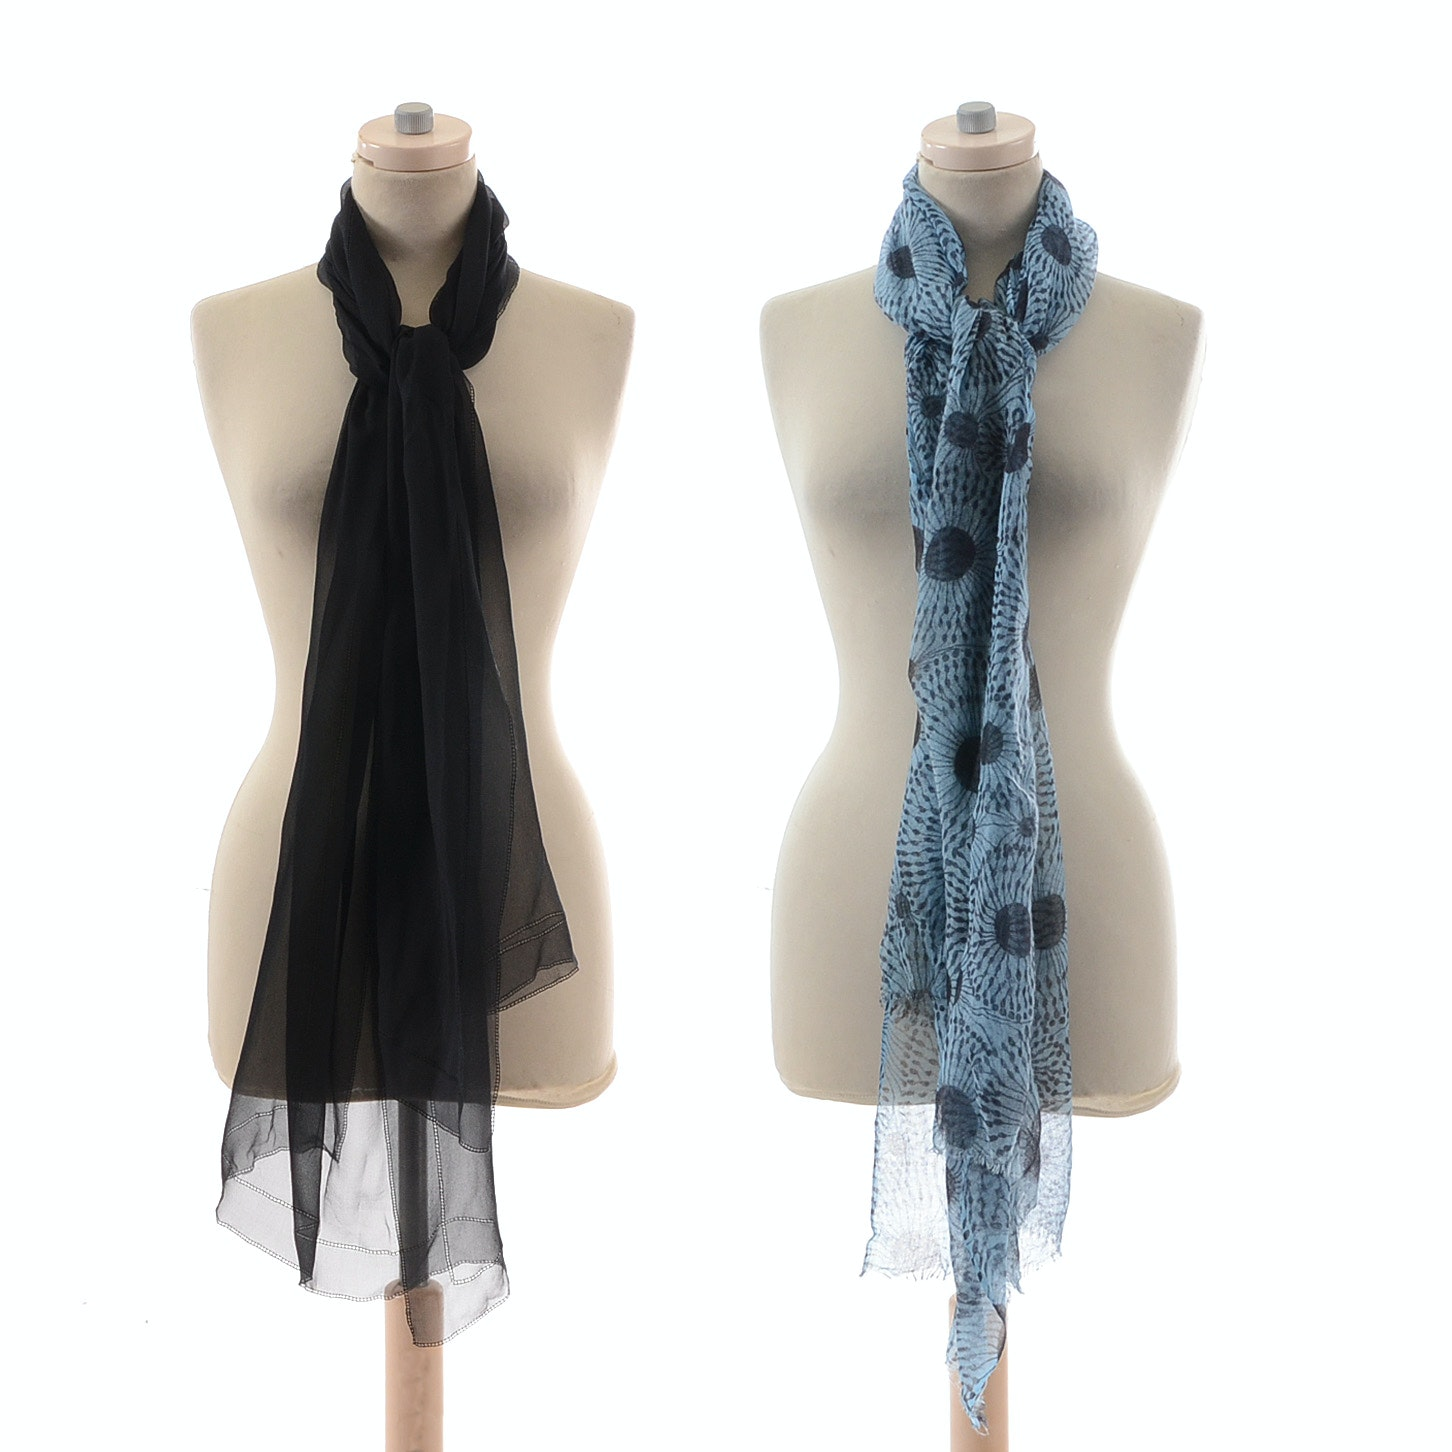 Black Silk Chiffon Wrap and Slate Blue and Black Floral Print Knit Wrap